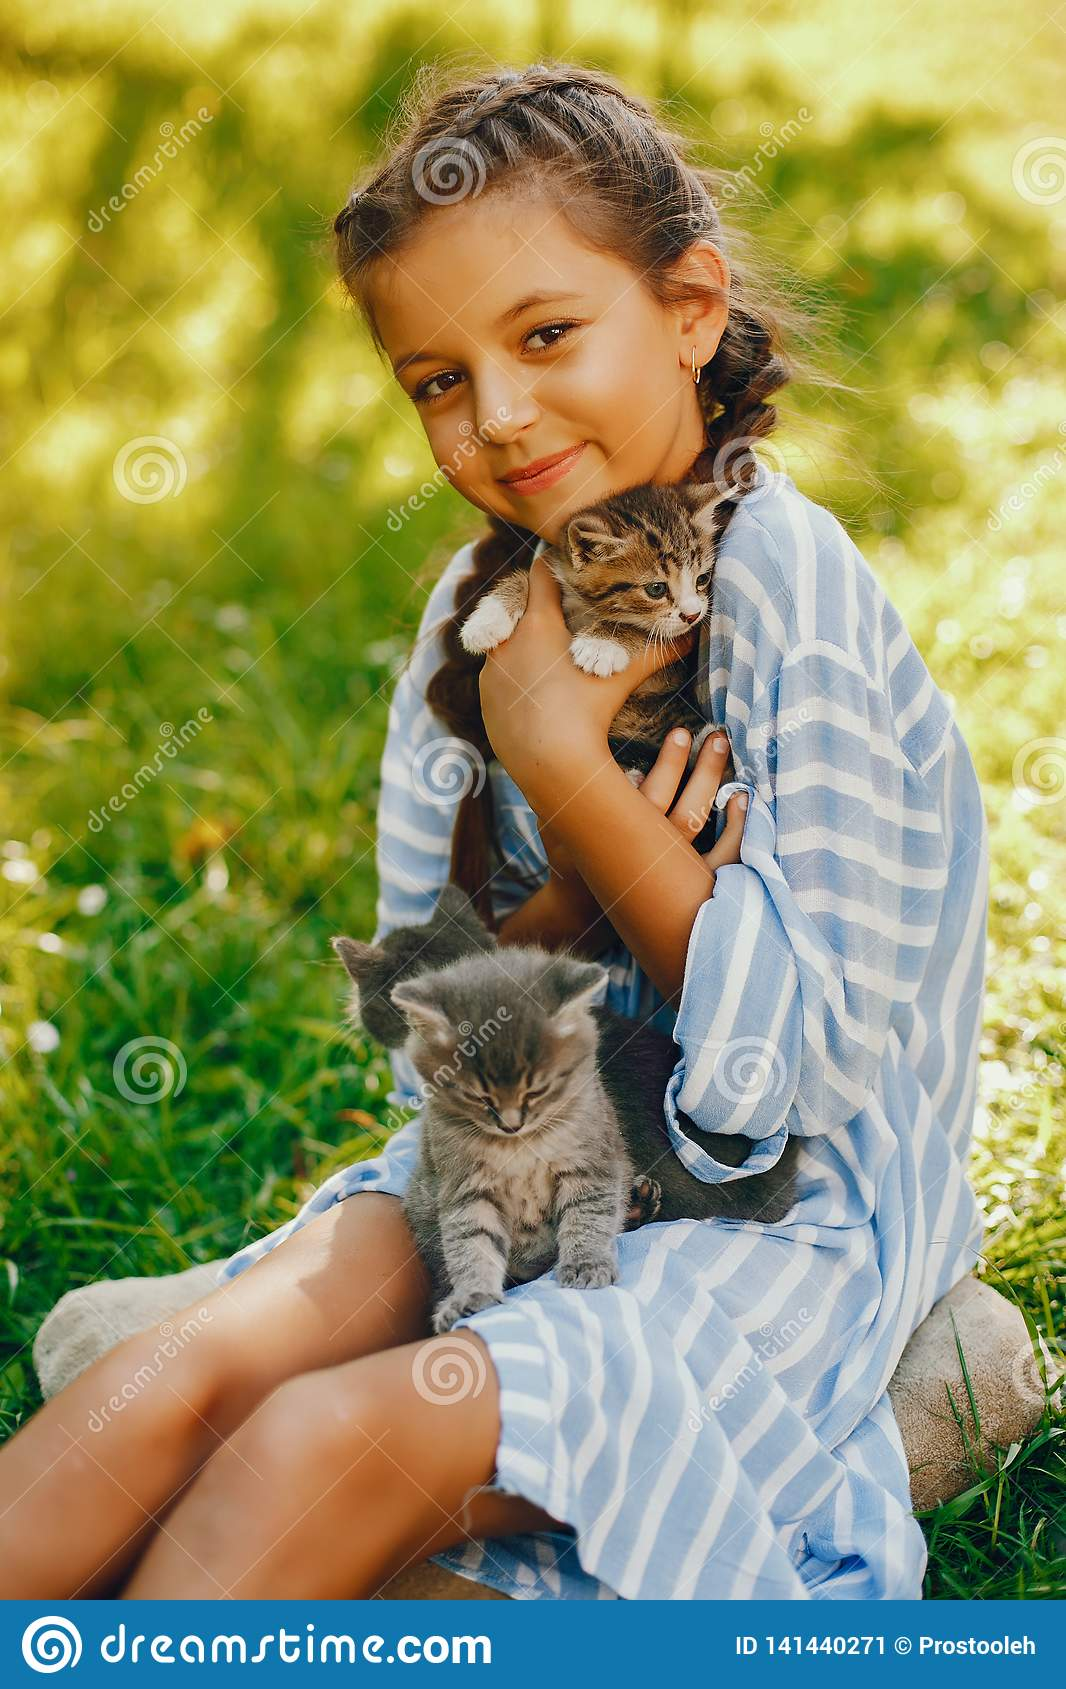 71 Girl Blue Dress Cats Photos Free Royalty Free Stock Photos From Dreamstime